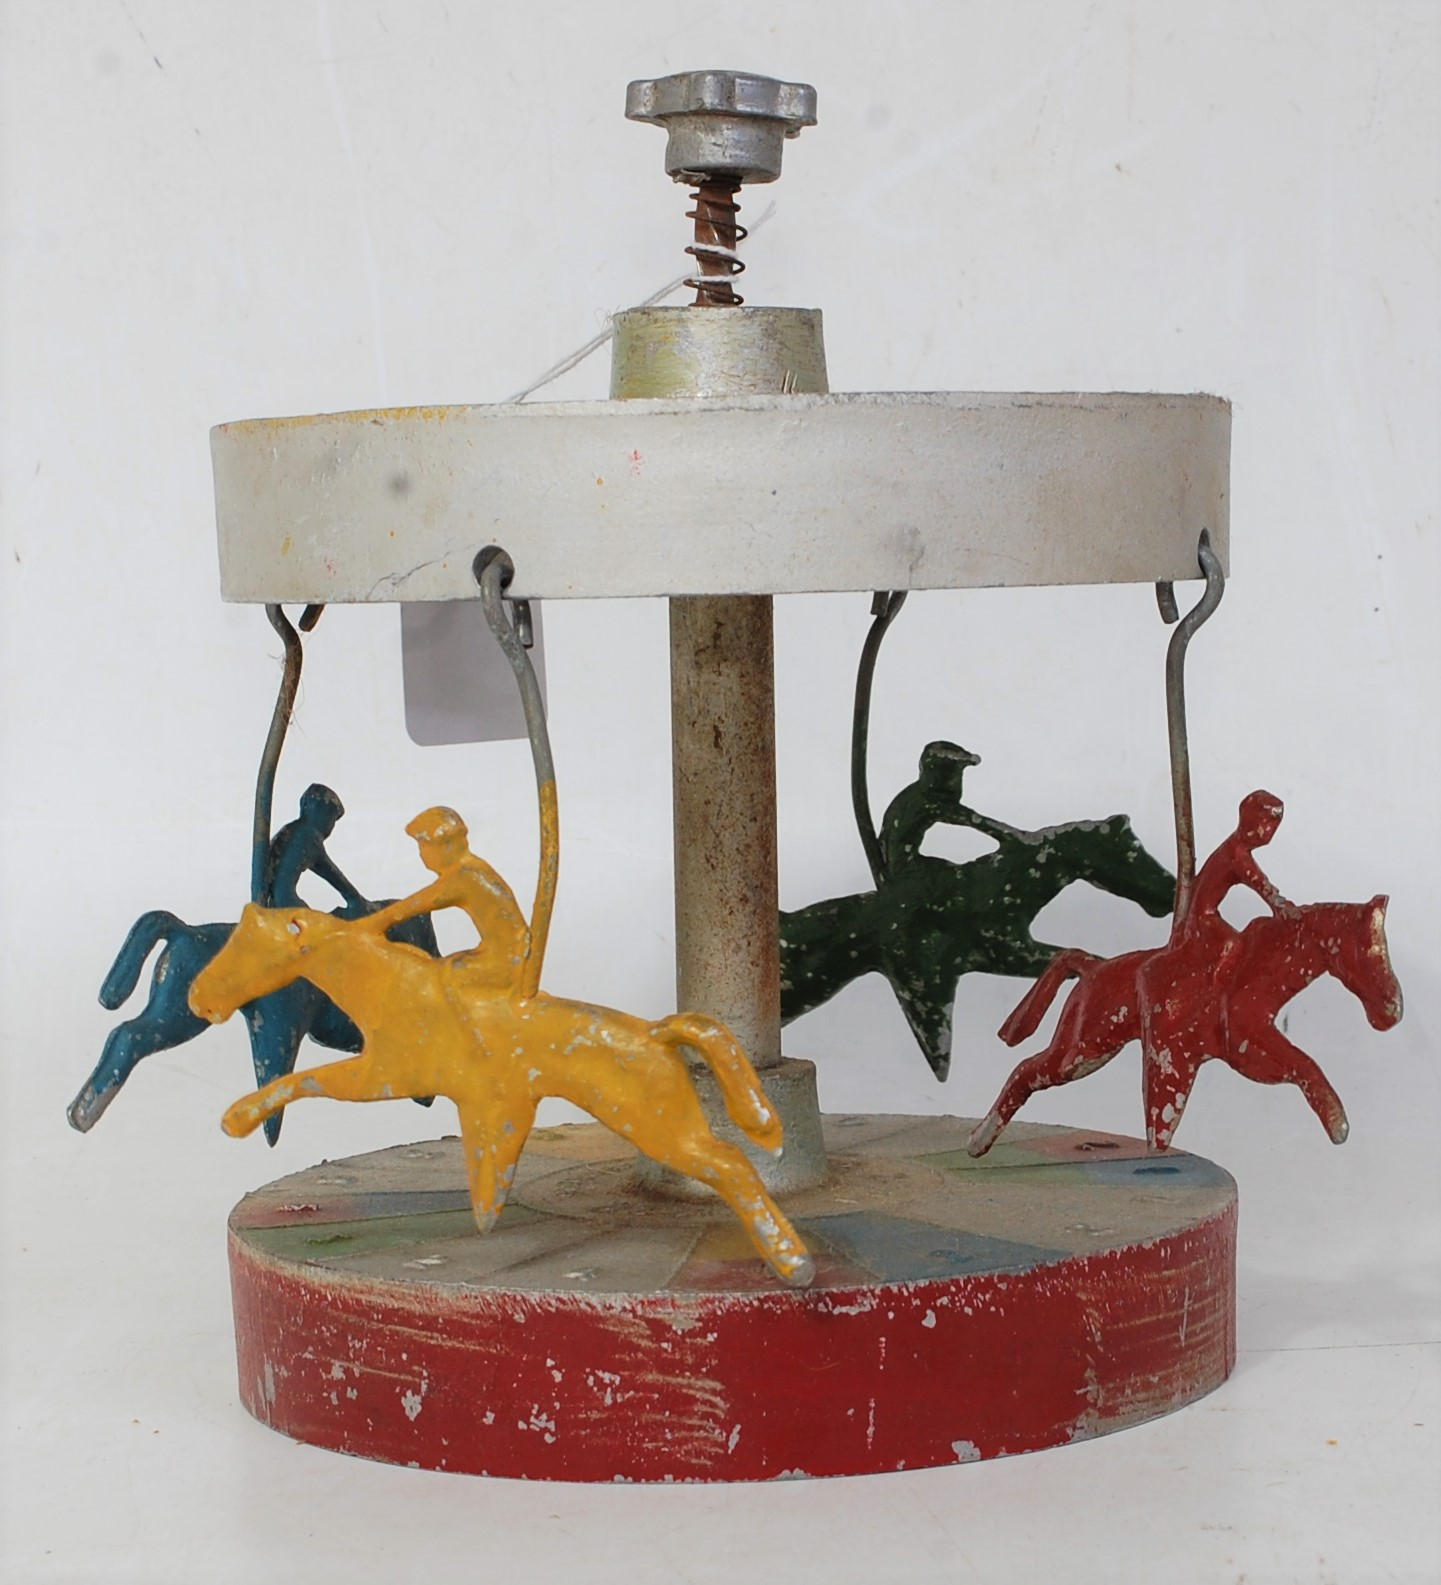 Lot 3219 - A 1940s Spira Chase racing game, cast alloy mechanical carousel, hand operated example with plunge